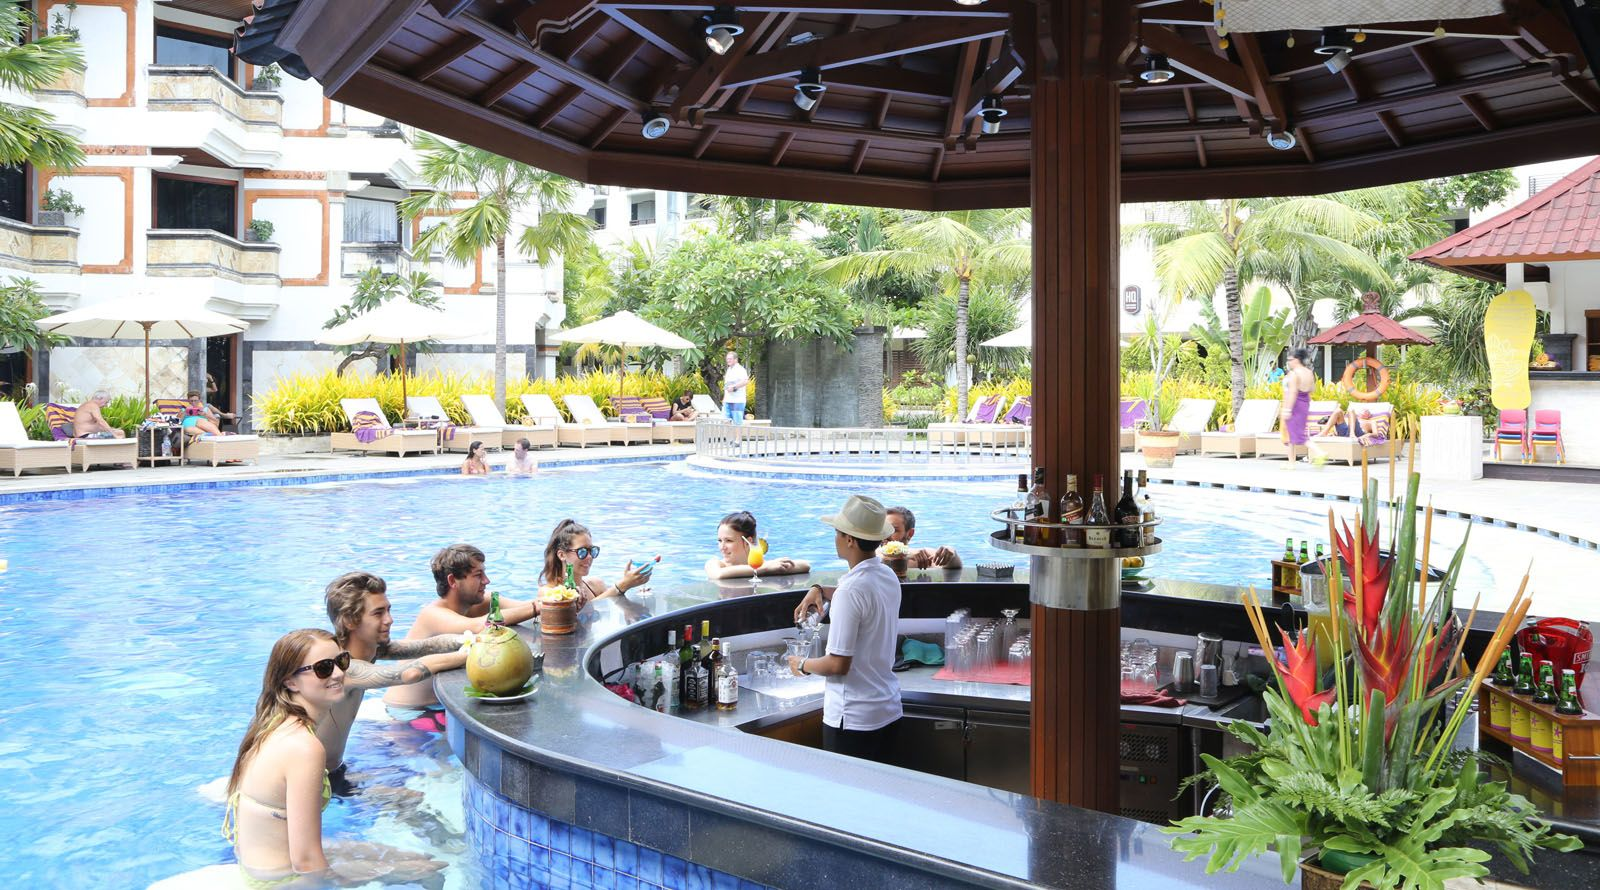 swim-up bar, sunken pool bar located at bali wing. | hotelthe